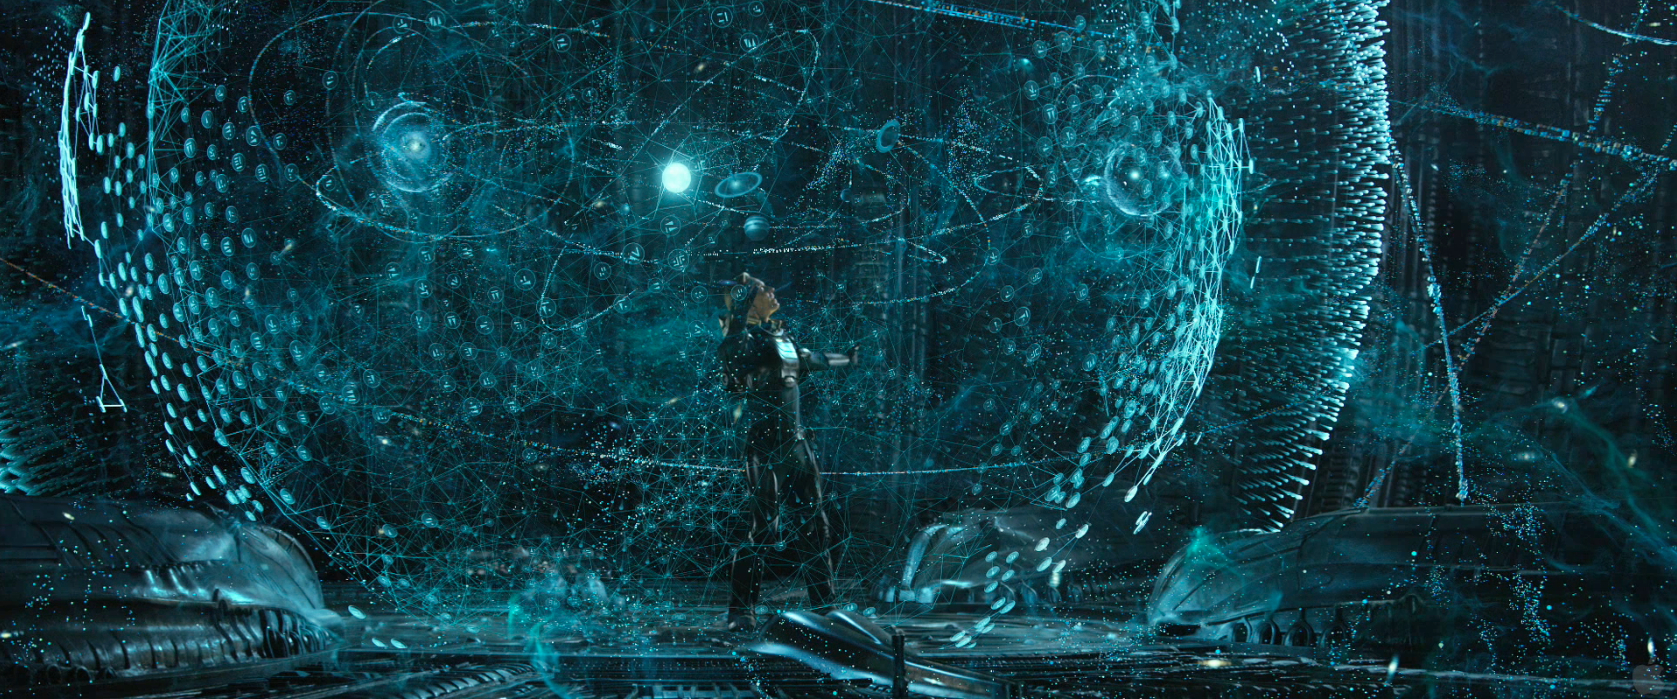 Prometheus movie Holograms by the alien spaceship computer ...